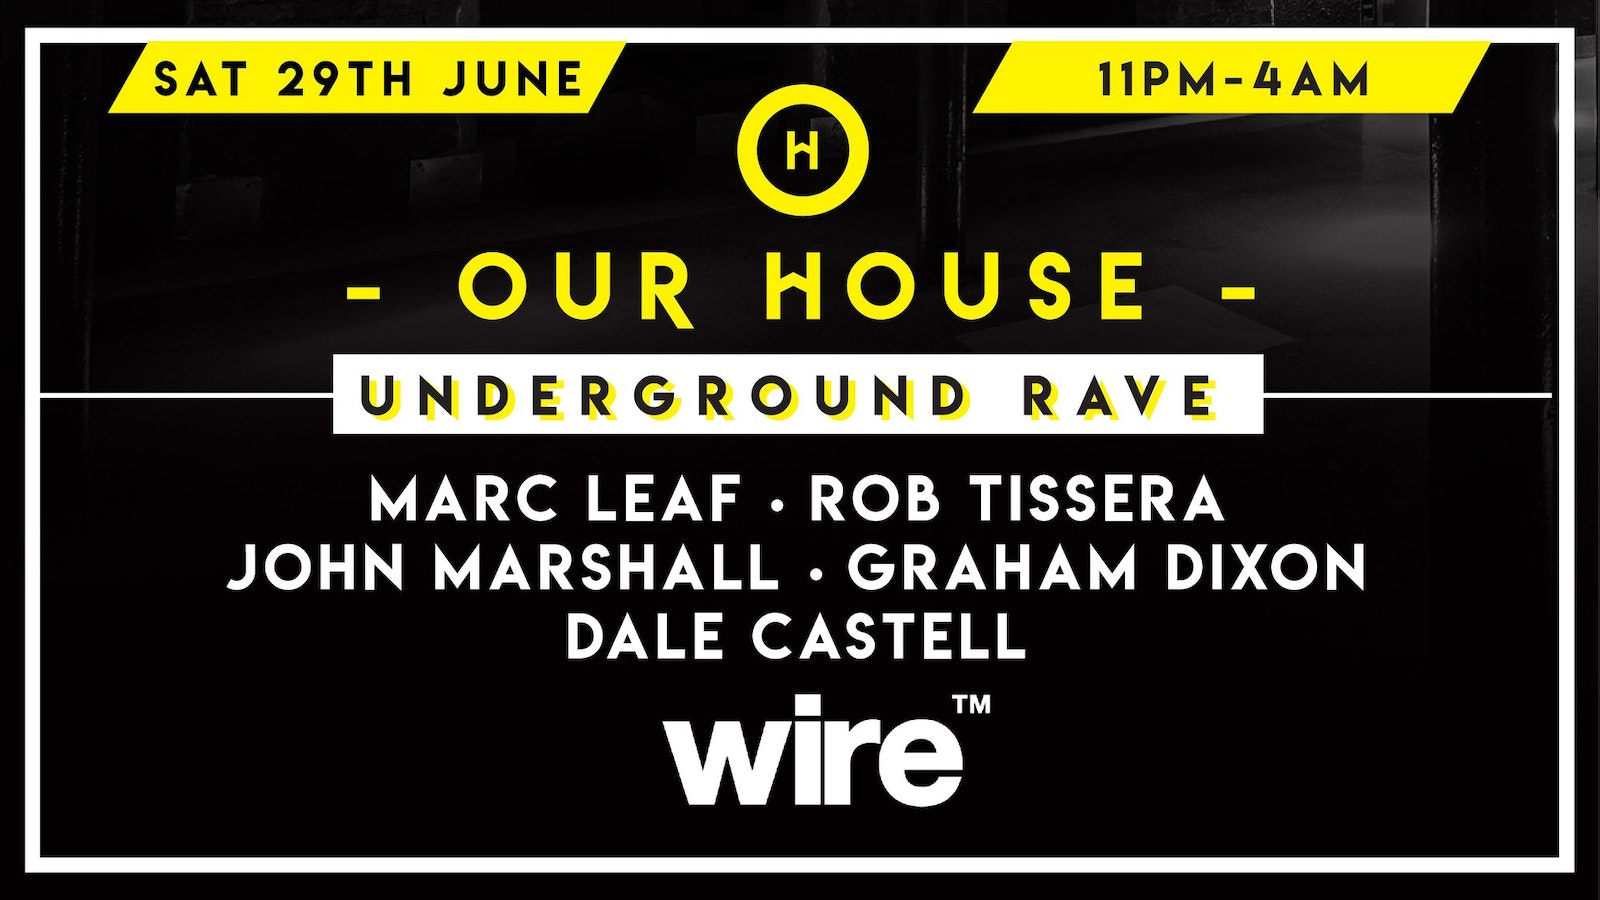 Our House Underground Rave